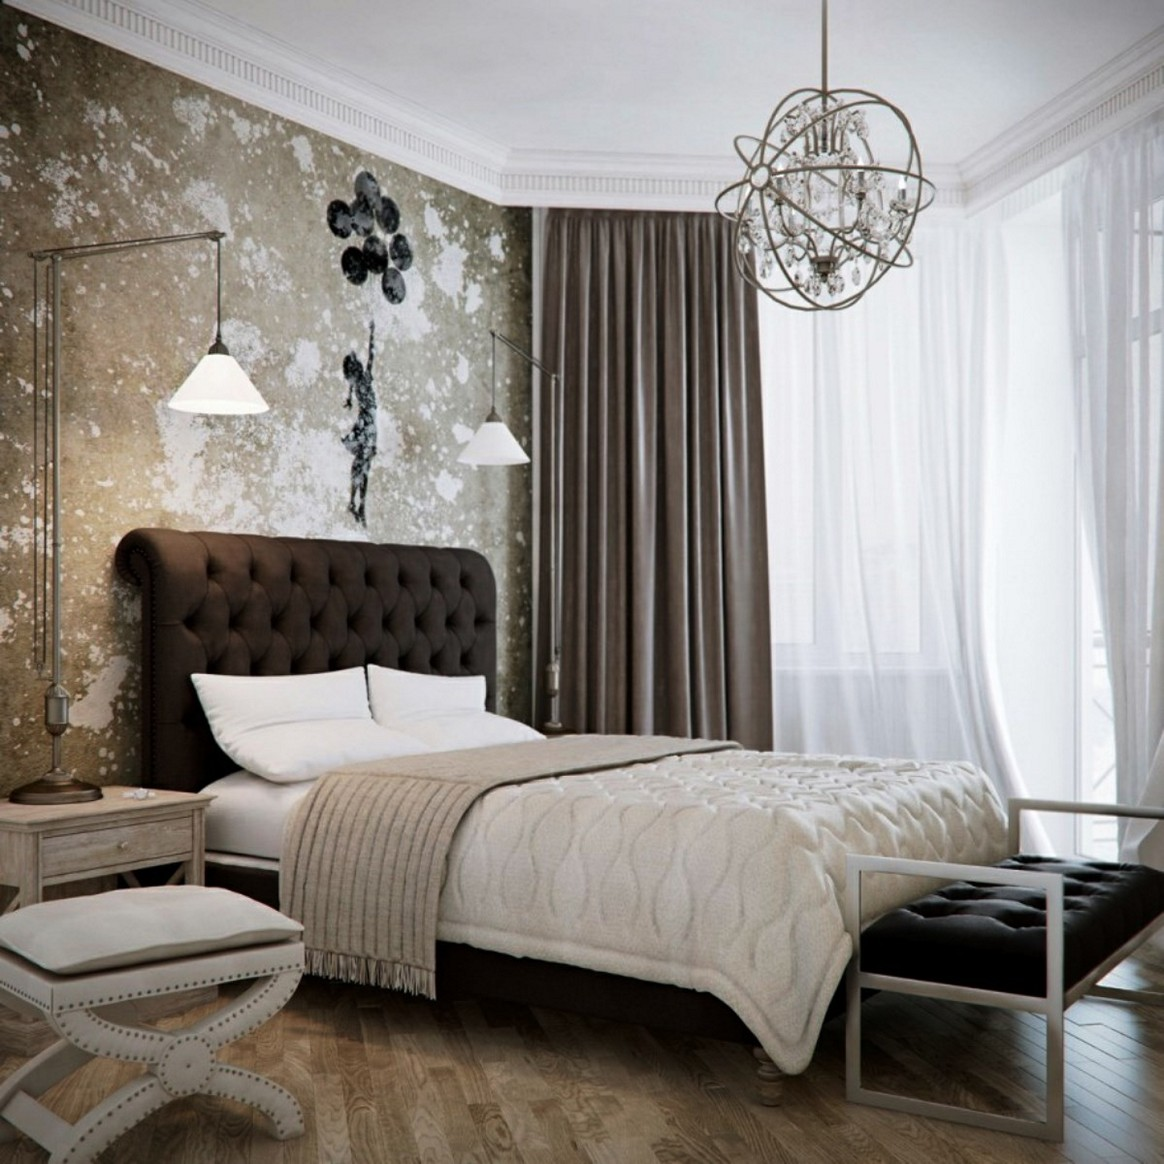 diy home decor ideas for unique home decor ideas bedroom